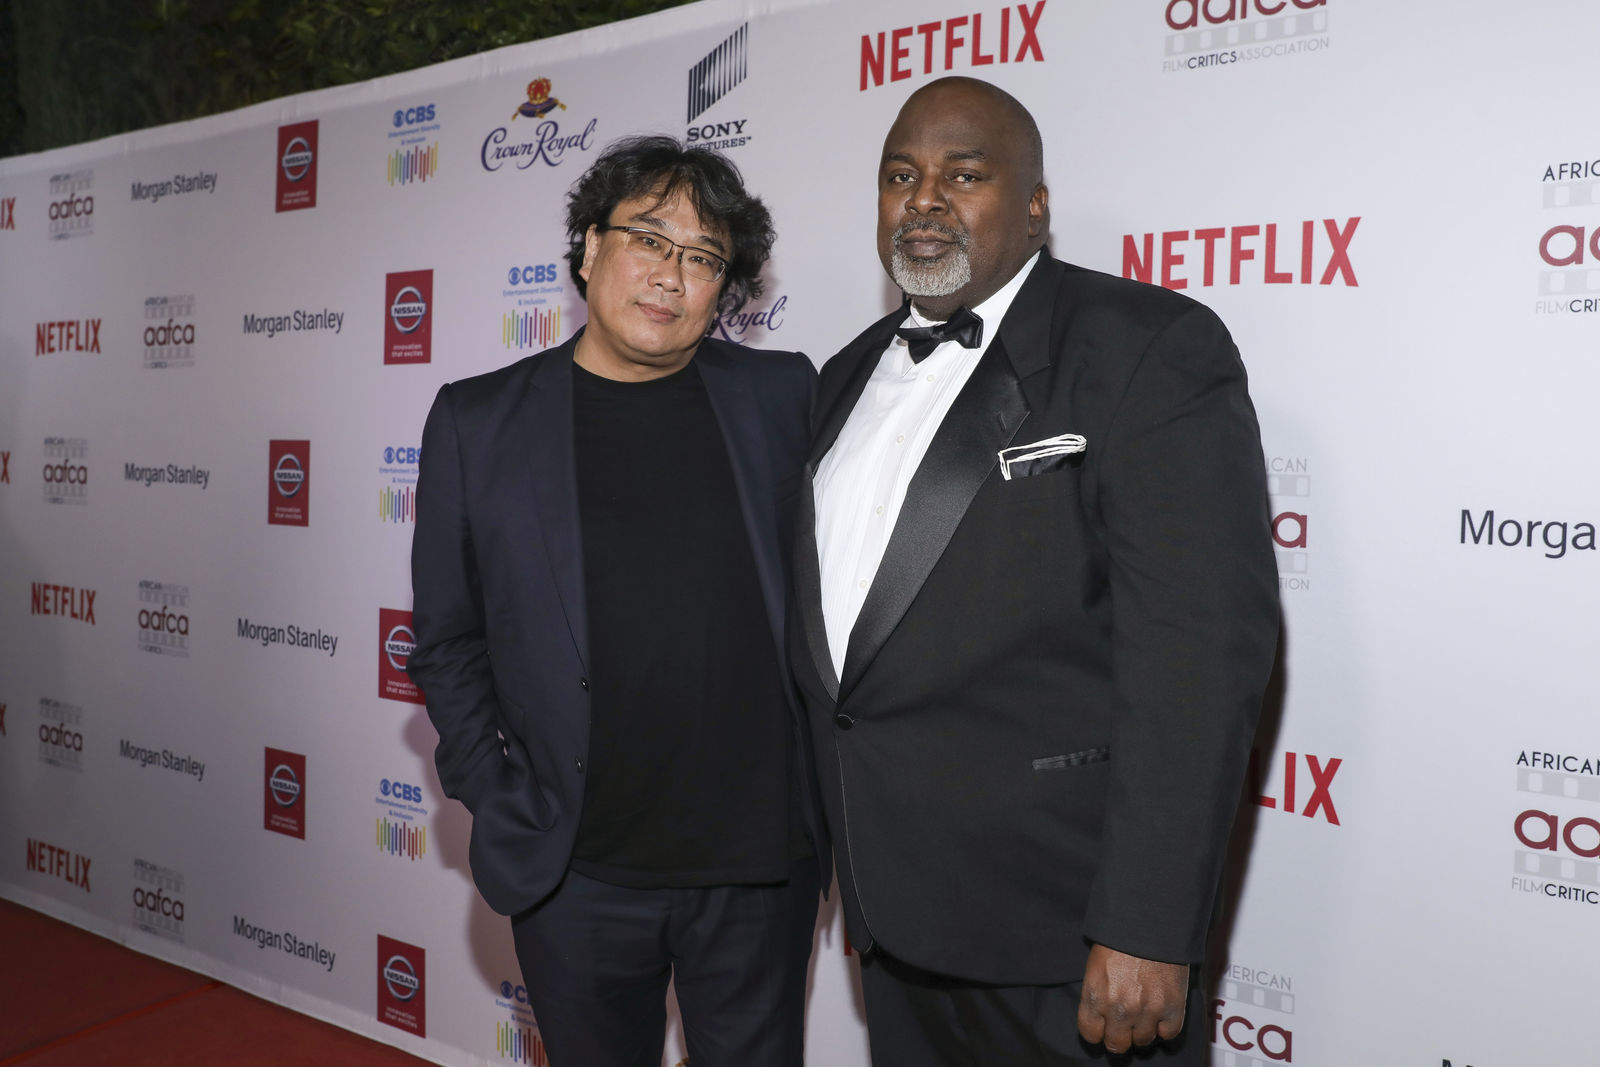 Bong Joon Ho and Gil Robertson attend the 11th Annual AAFCA Awards at the Taglyan Complex on Wednesday, Jan. 22, 2020, in Los Angeles. (Photo by Mark Von Holden /Invision/AP)